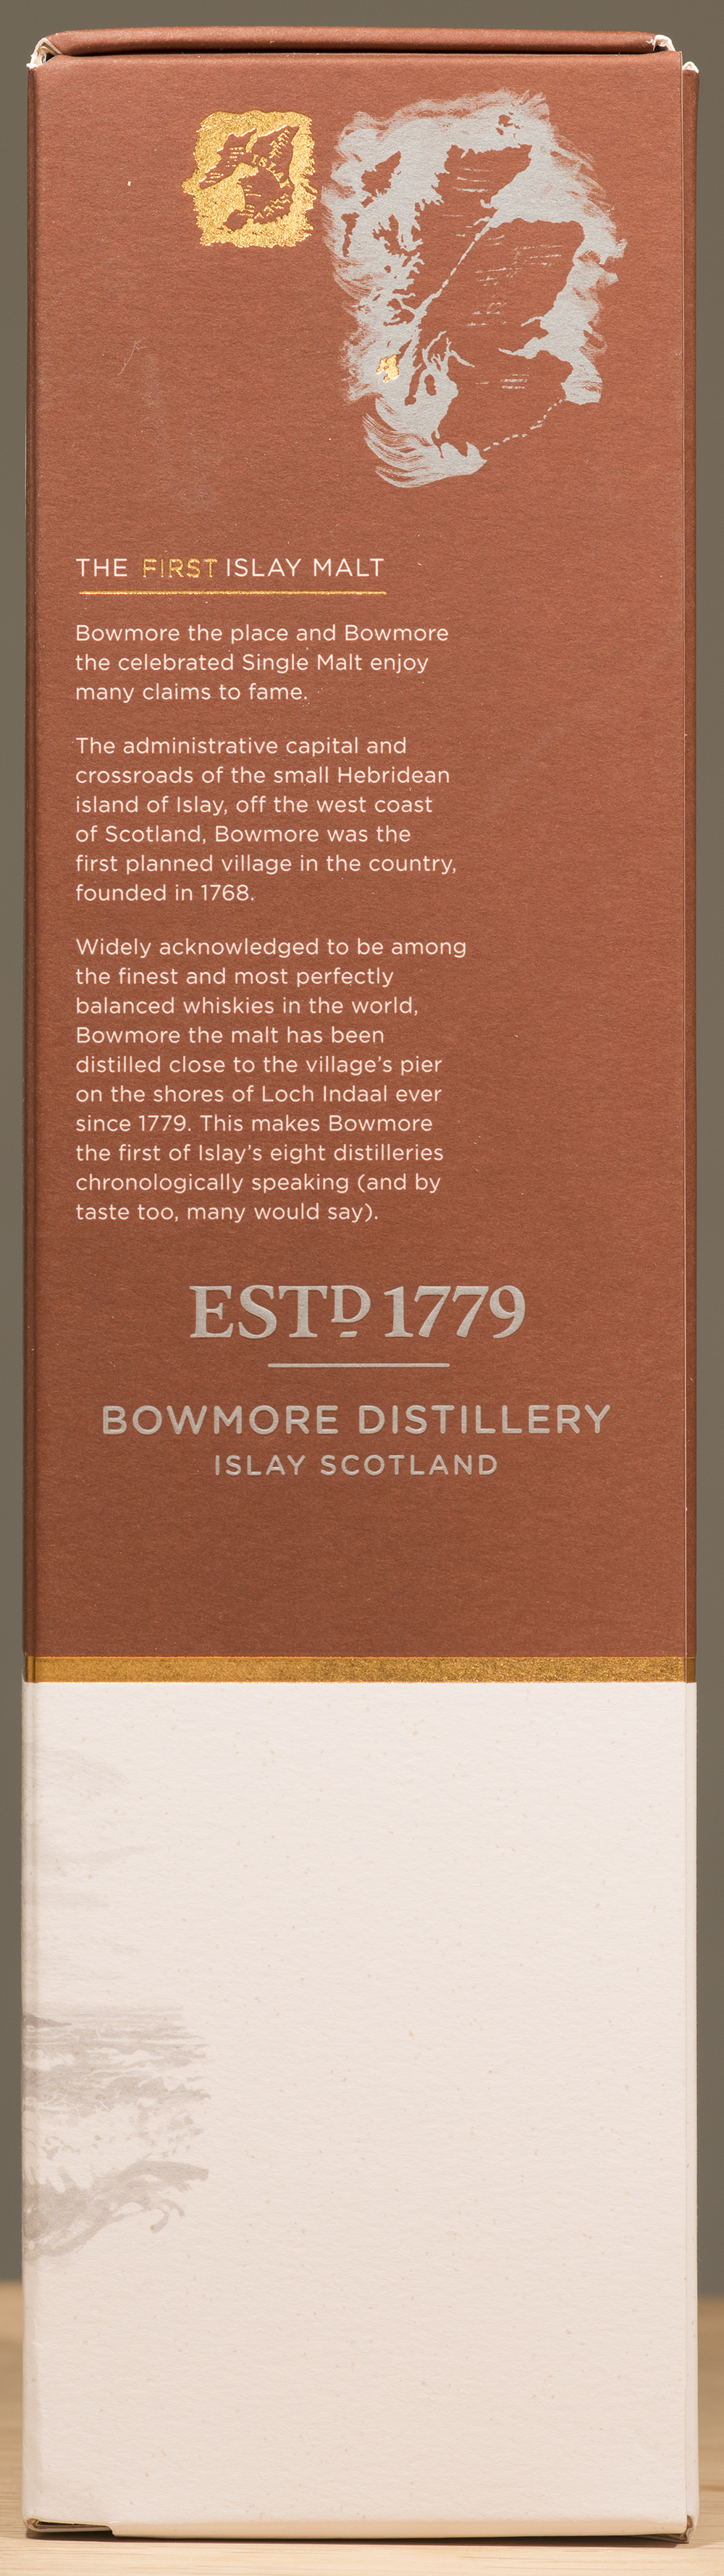 Billede: DSC_0275 Bowmore Laimrig 15 - box side.jpg